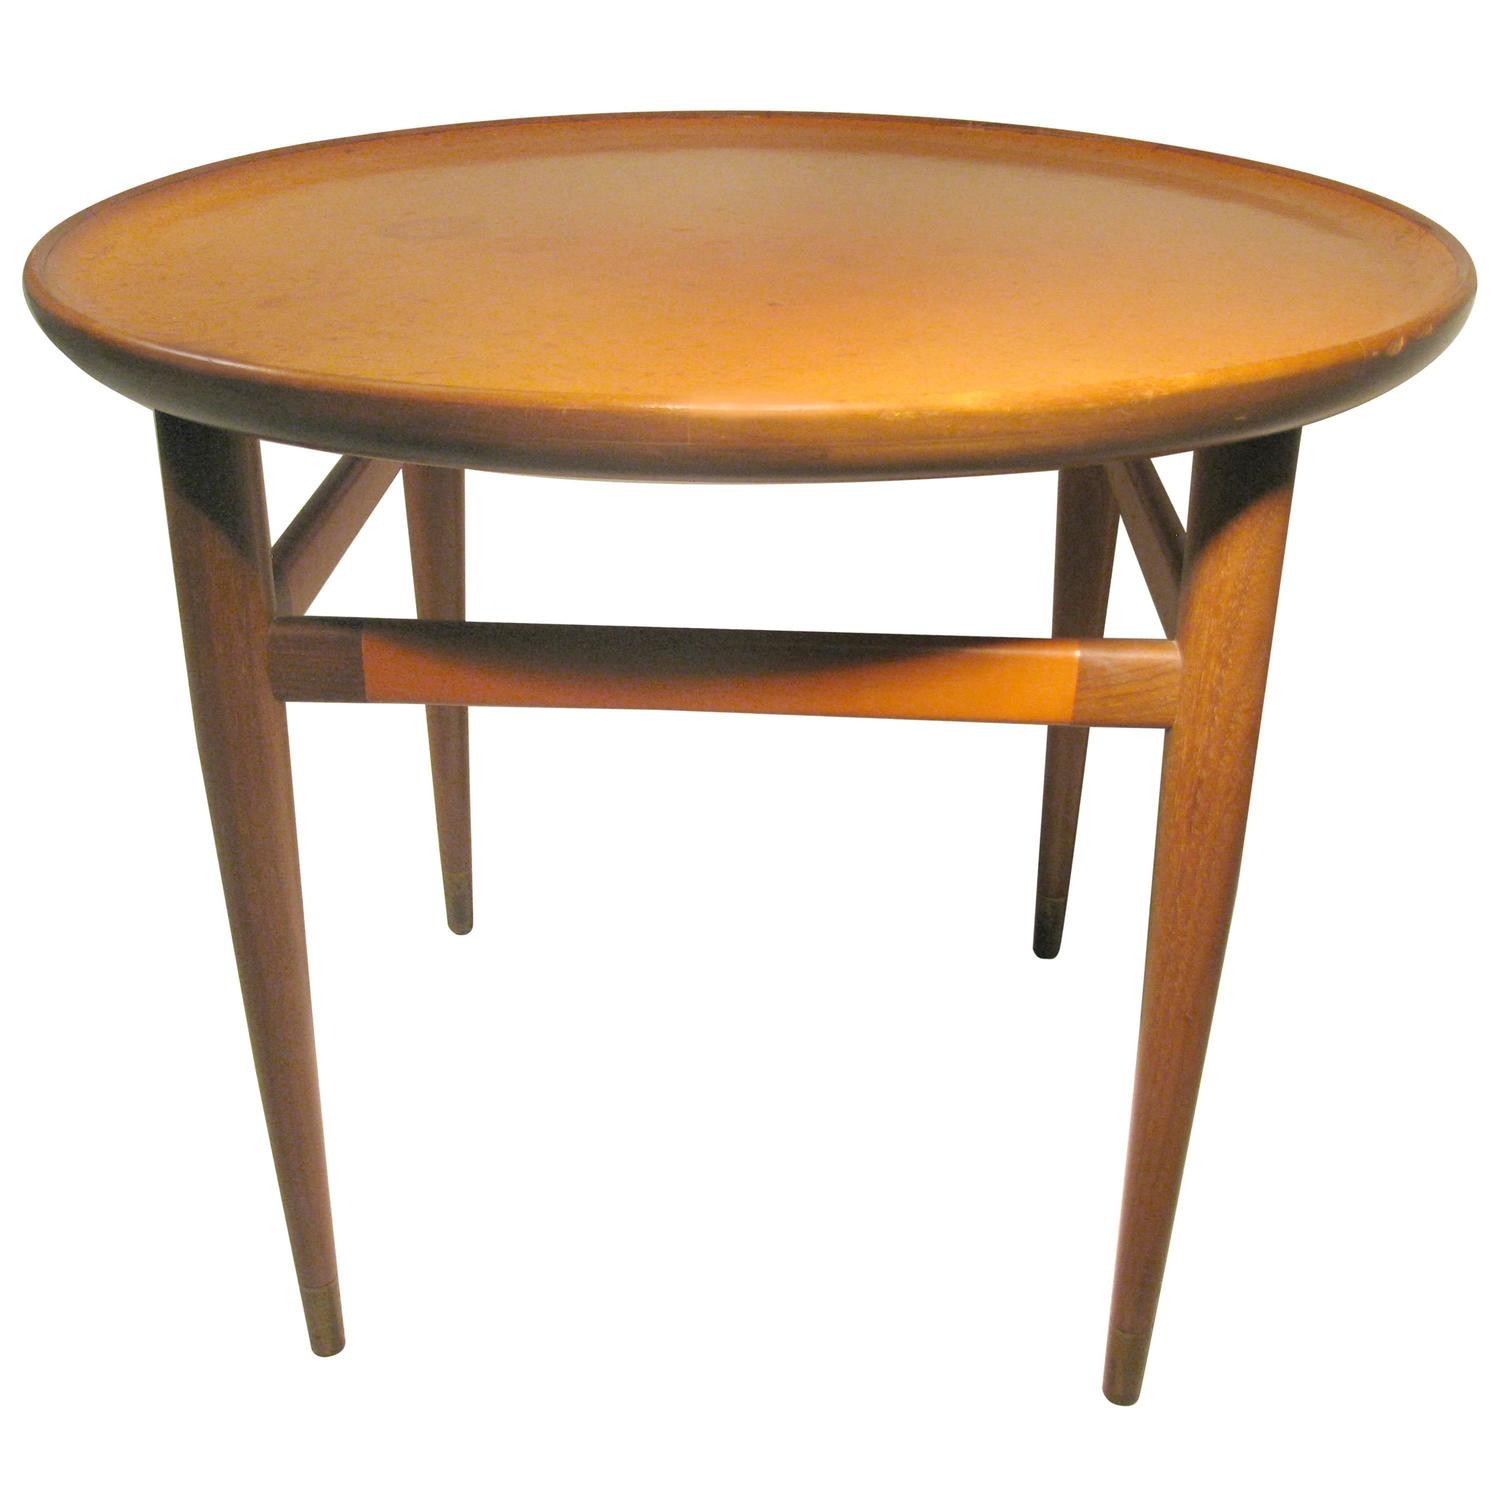 Classic Midcentury Leather Top Cocktail Table Henredon Heritage For Sale At 1stdibs